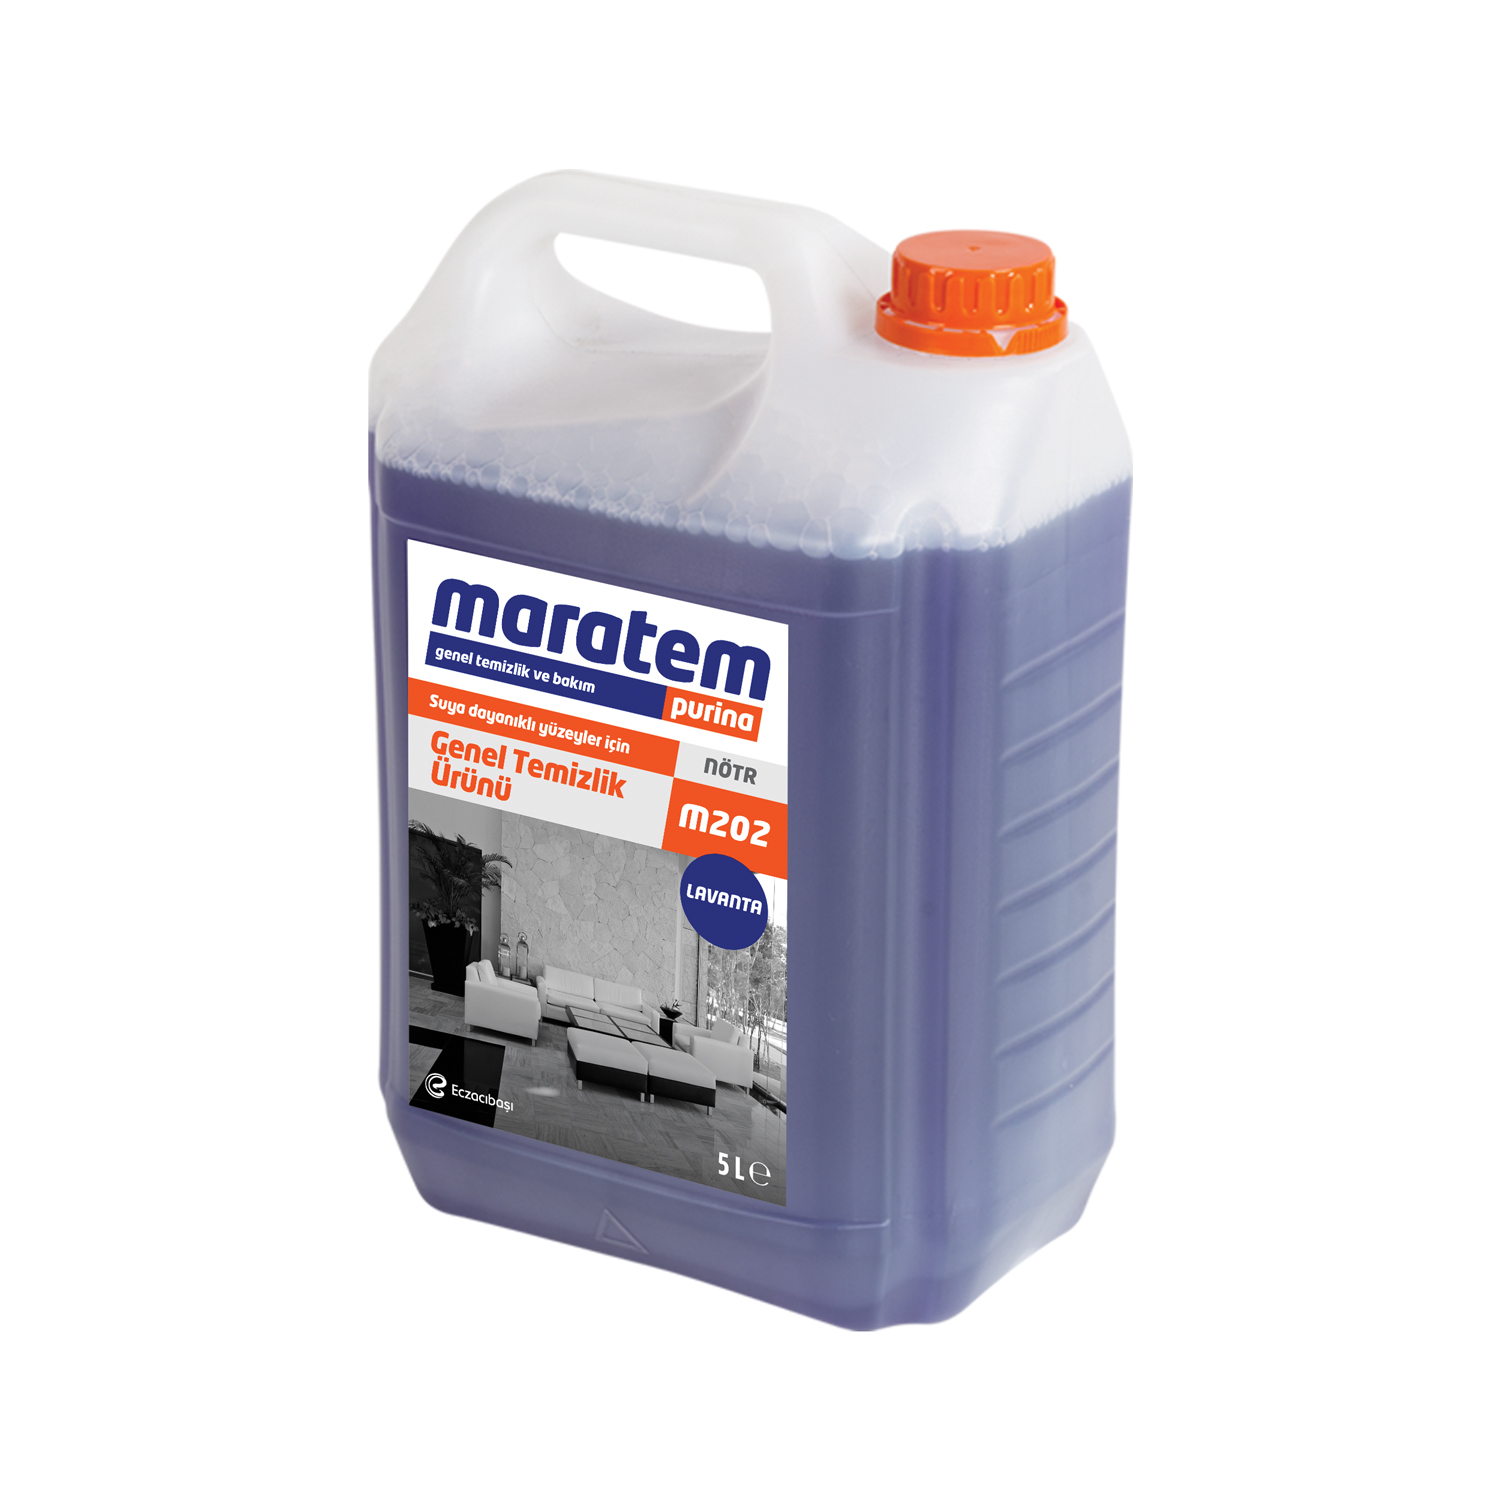 M202 Multi-Purpose Cleaner - Levender